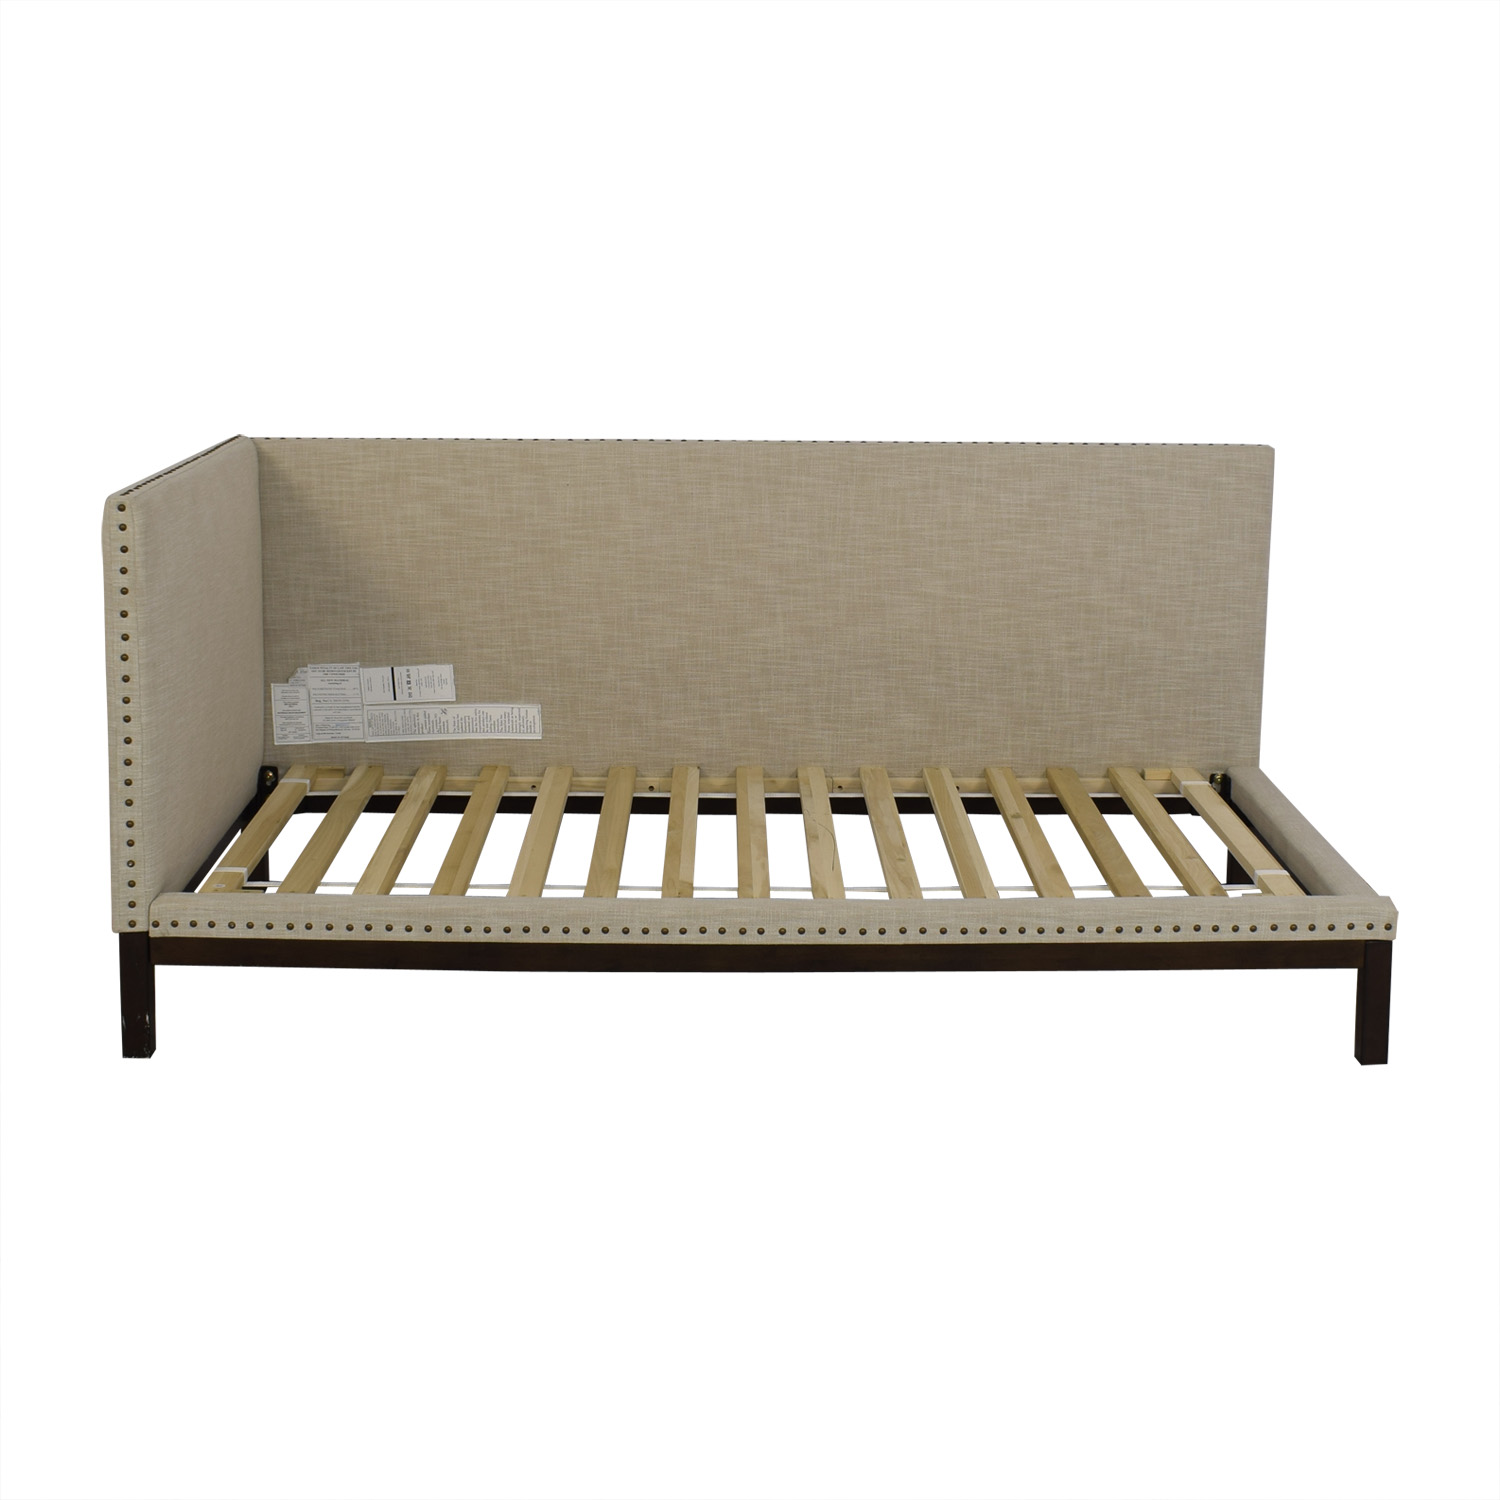 West Elm West Elm Nailhead Trim Daybed for sale